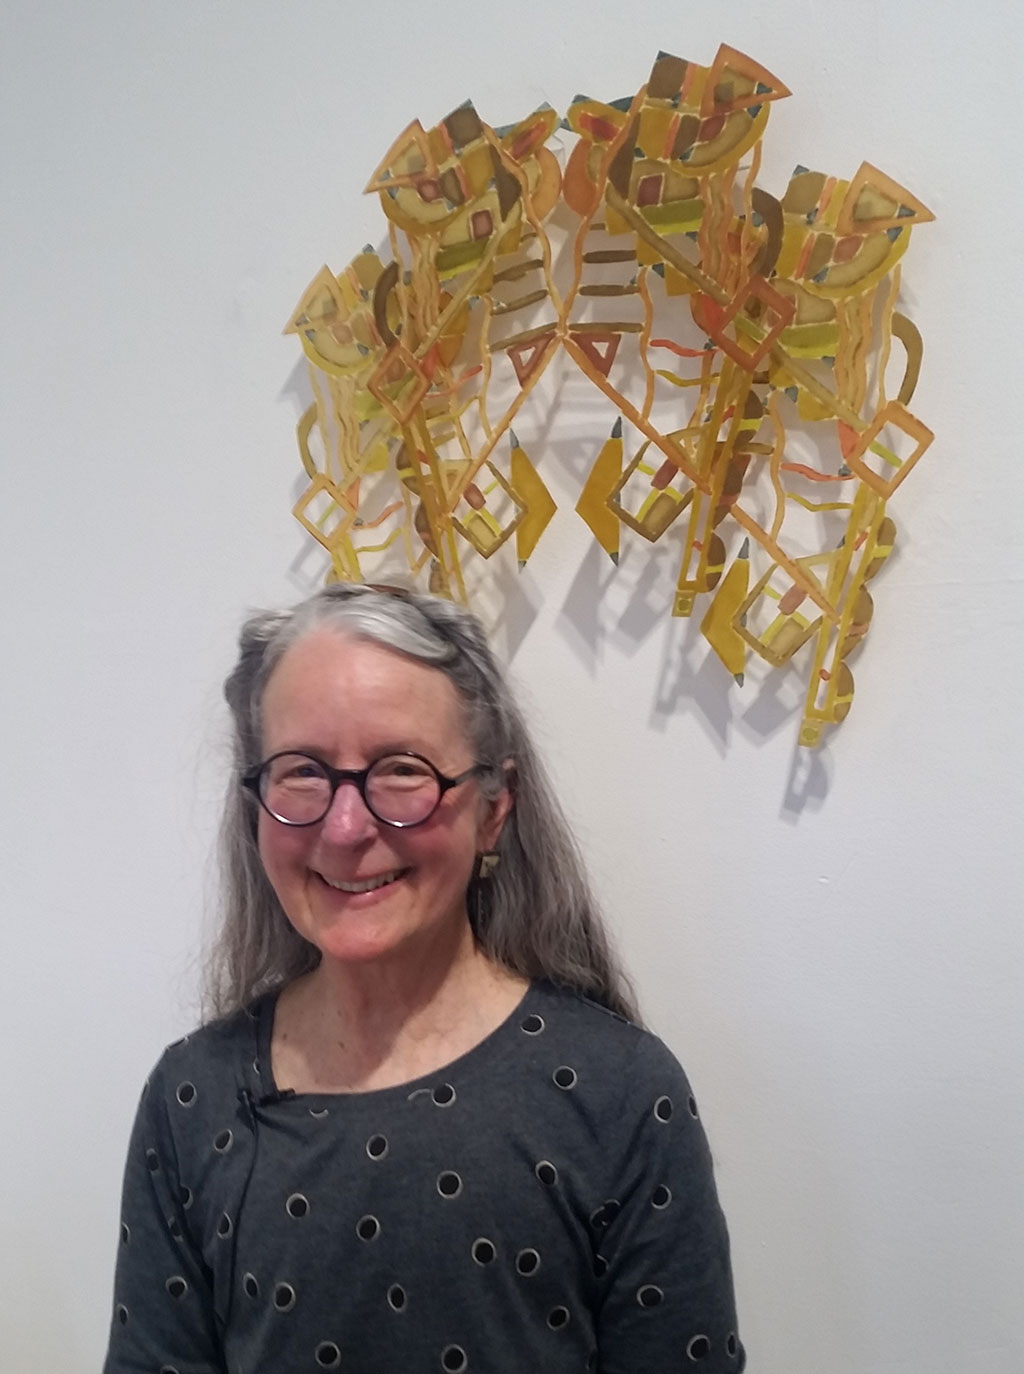 5d02ec316 Joy Stocksdale's textile interest came while in high school in 1965 with  machine embroidery. After college she continued to work with and teach  stitching, ...